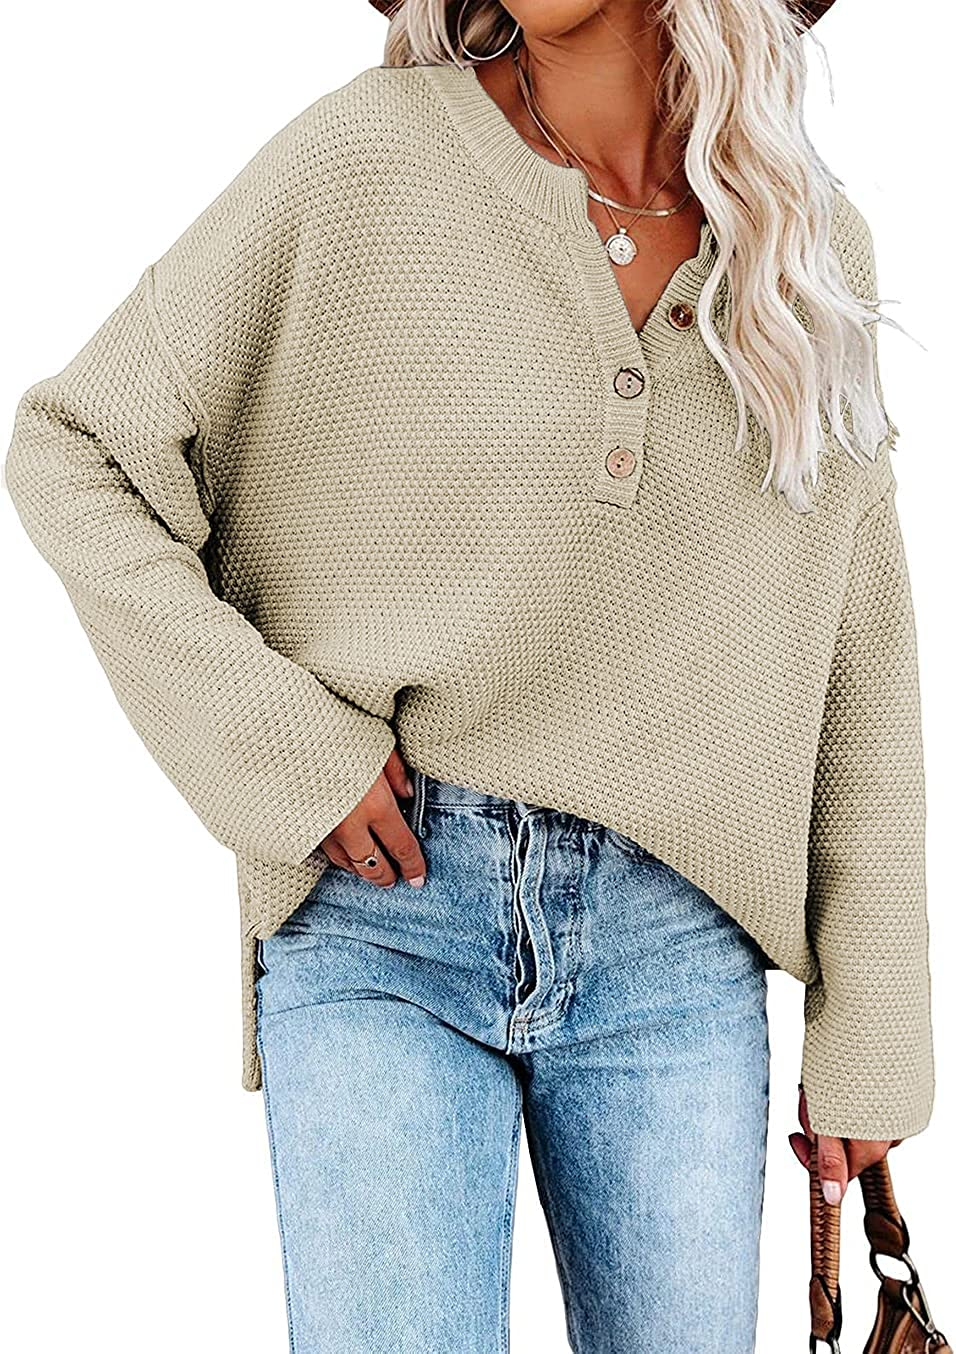 SHEWIN Women's Long Sleeve Button Neck Fall Pullover Sweaters Knit Jumper Tops